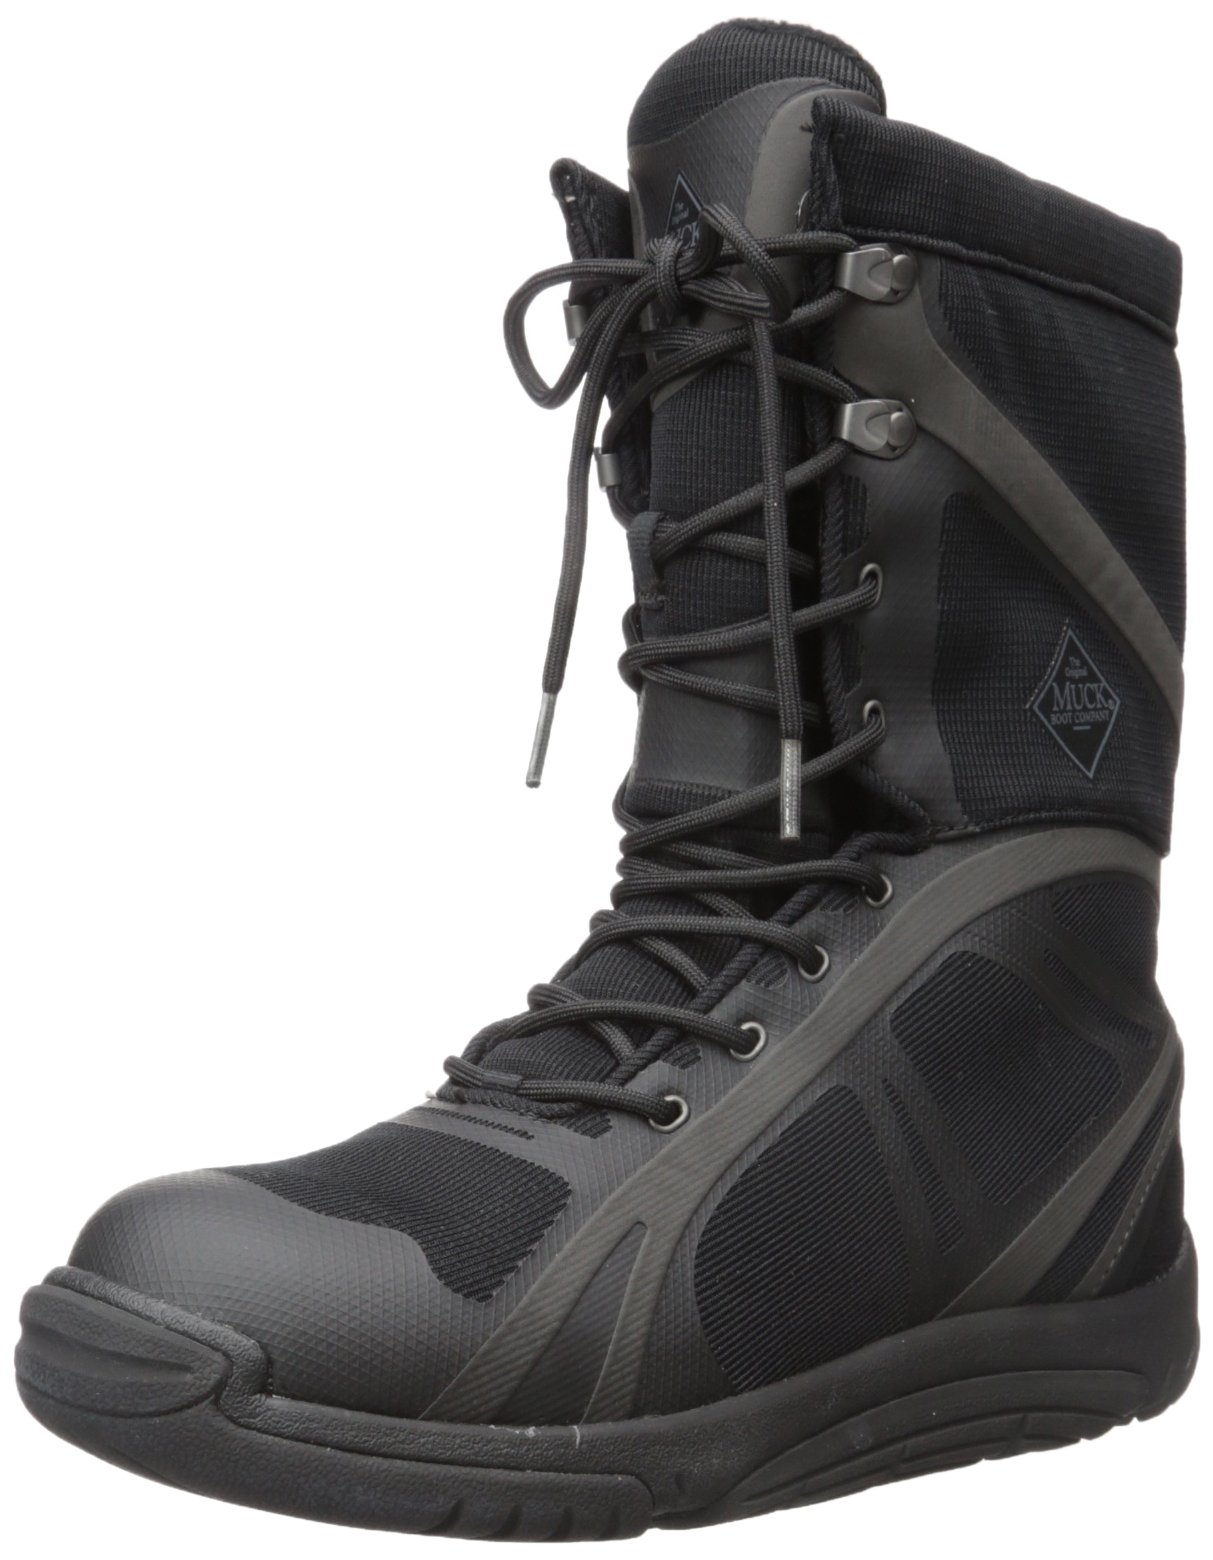 Muck Pursuit Shadow Rubber Lightweight Insulated Scent-Masking Mid-Height Men's Hunting Boots